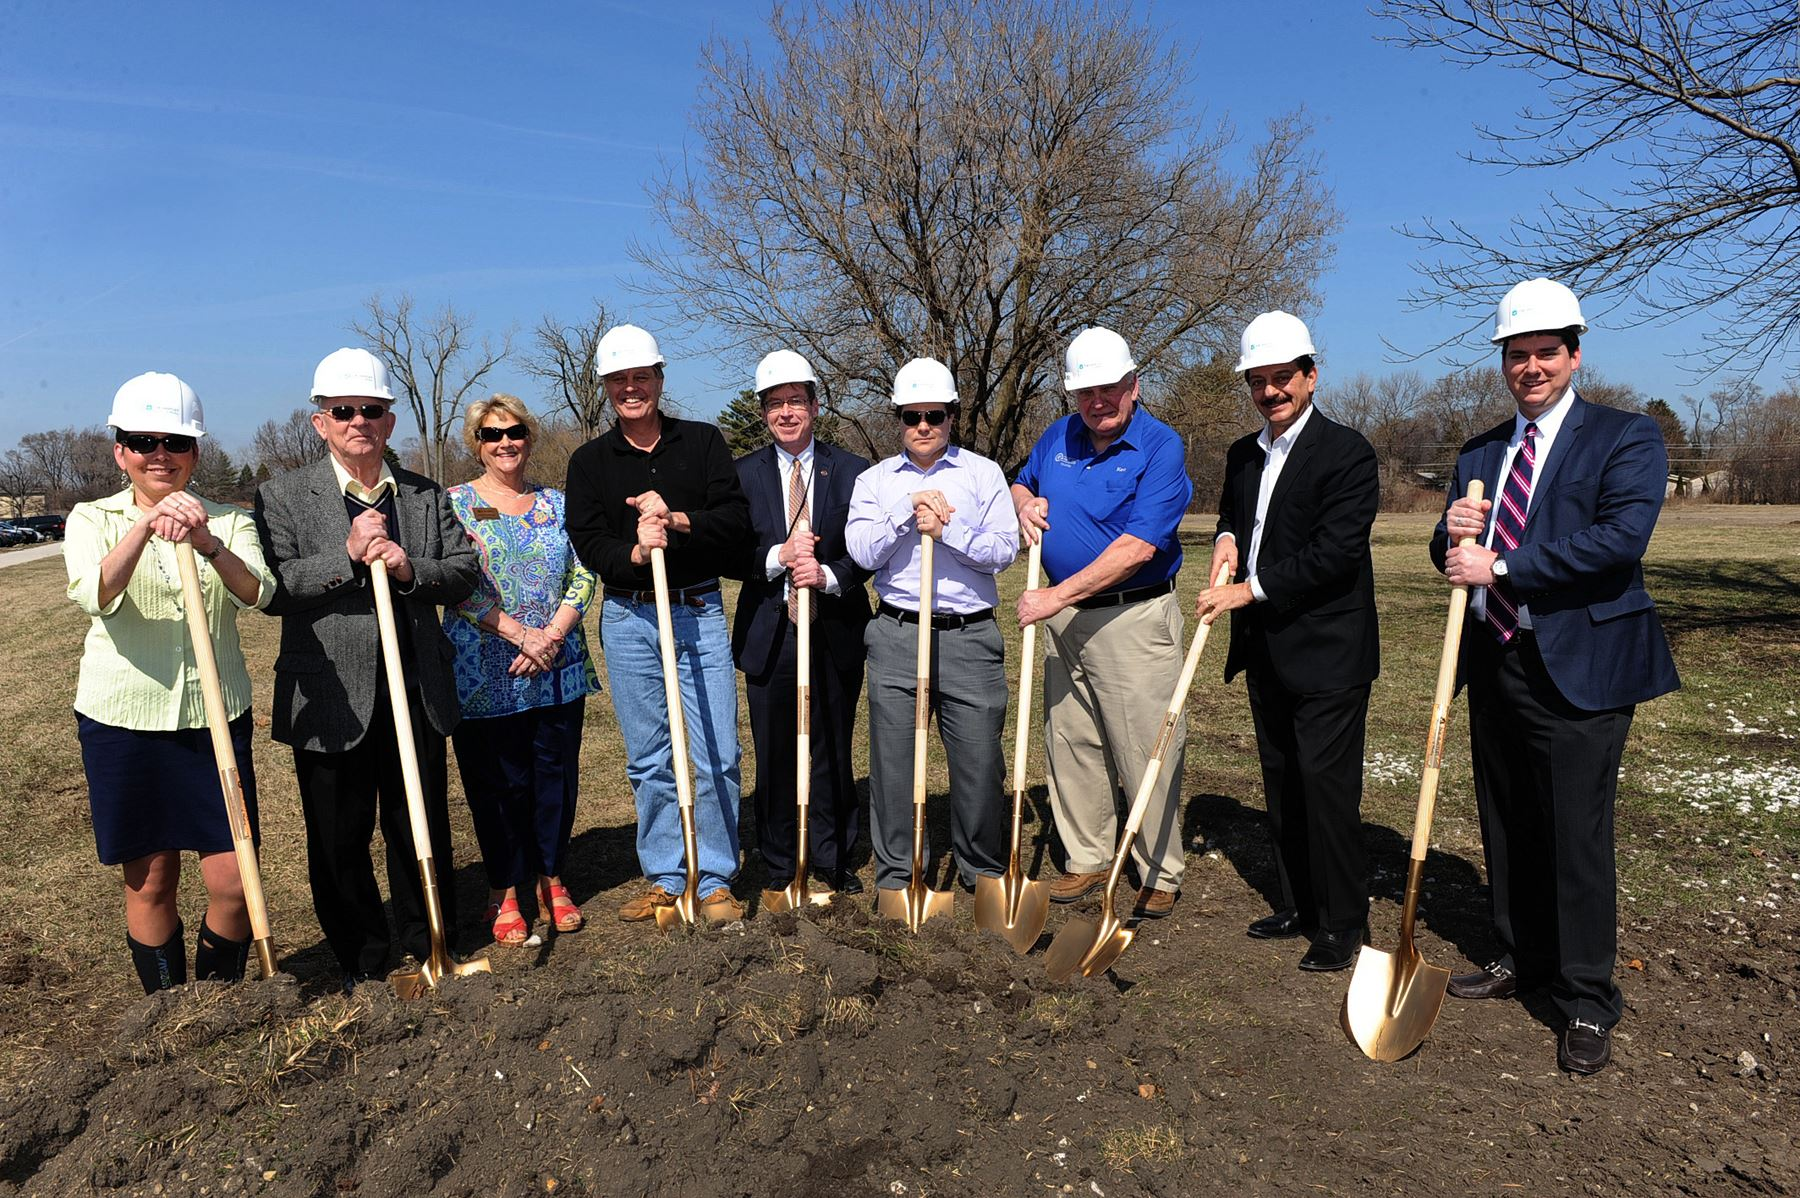 Representatives hold shovels and wear hard hats at the Whitley Groundbreaking Ceremony